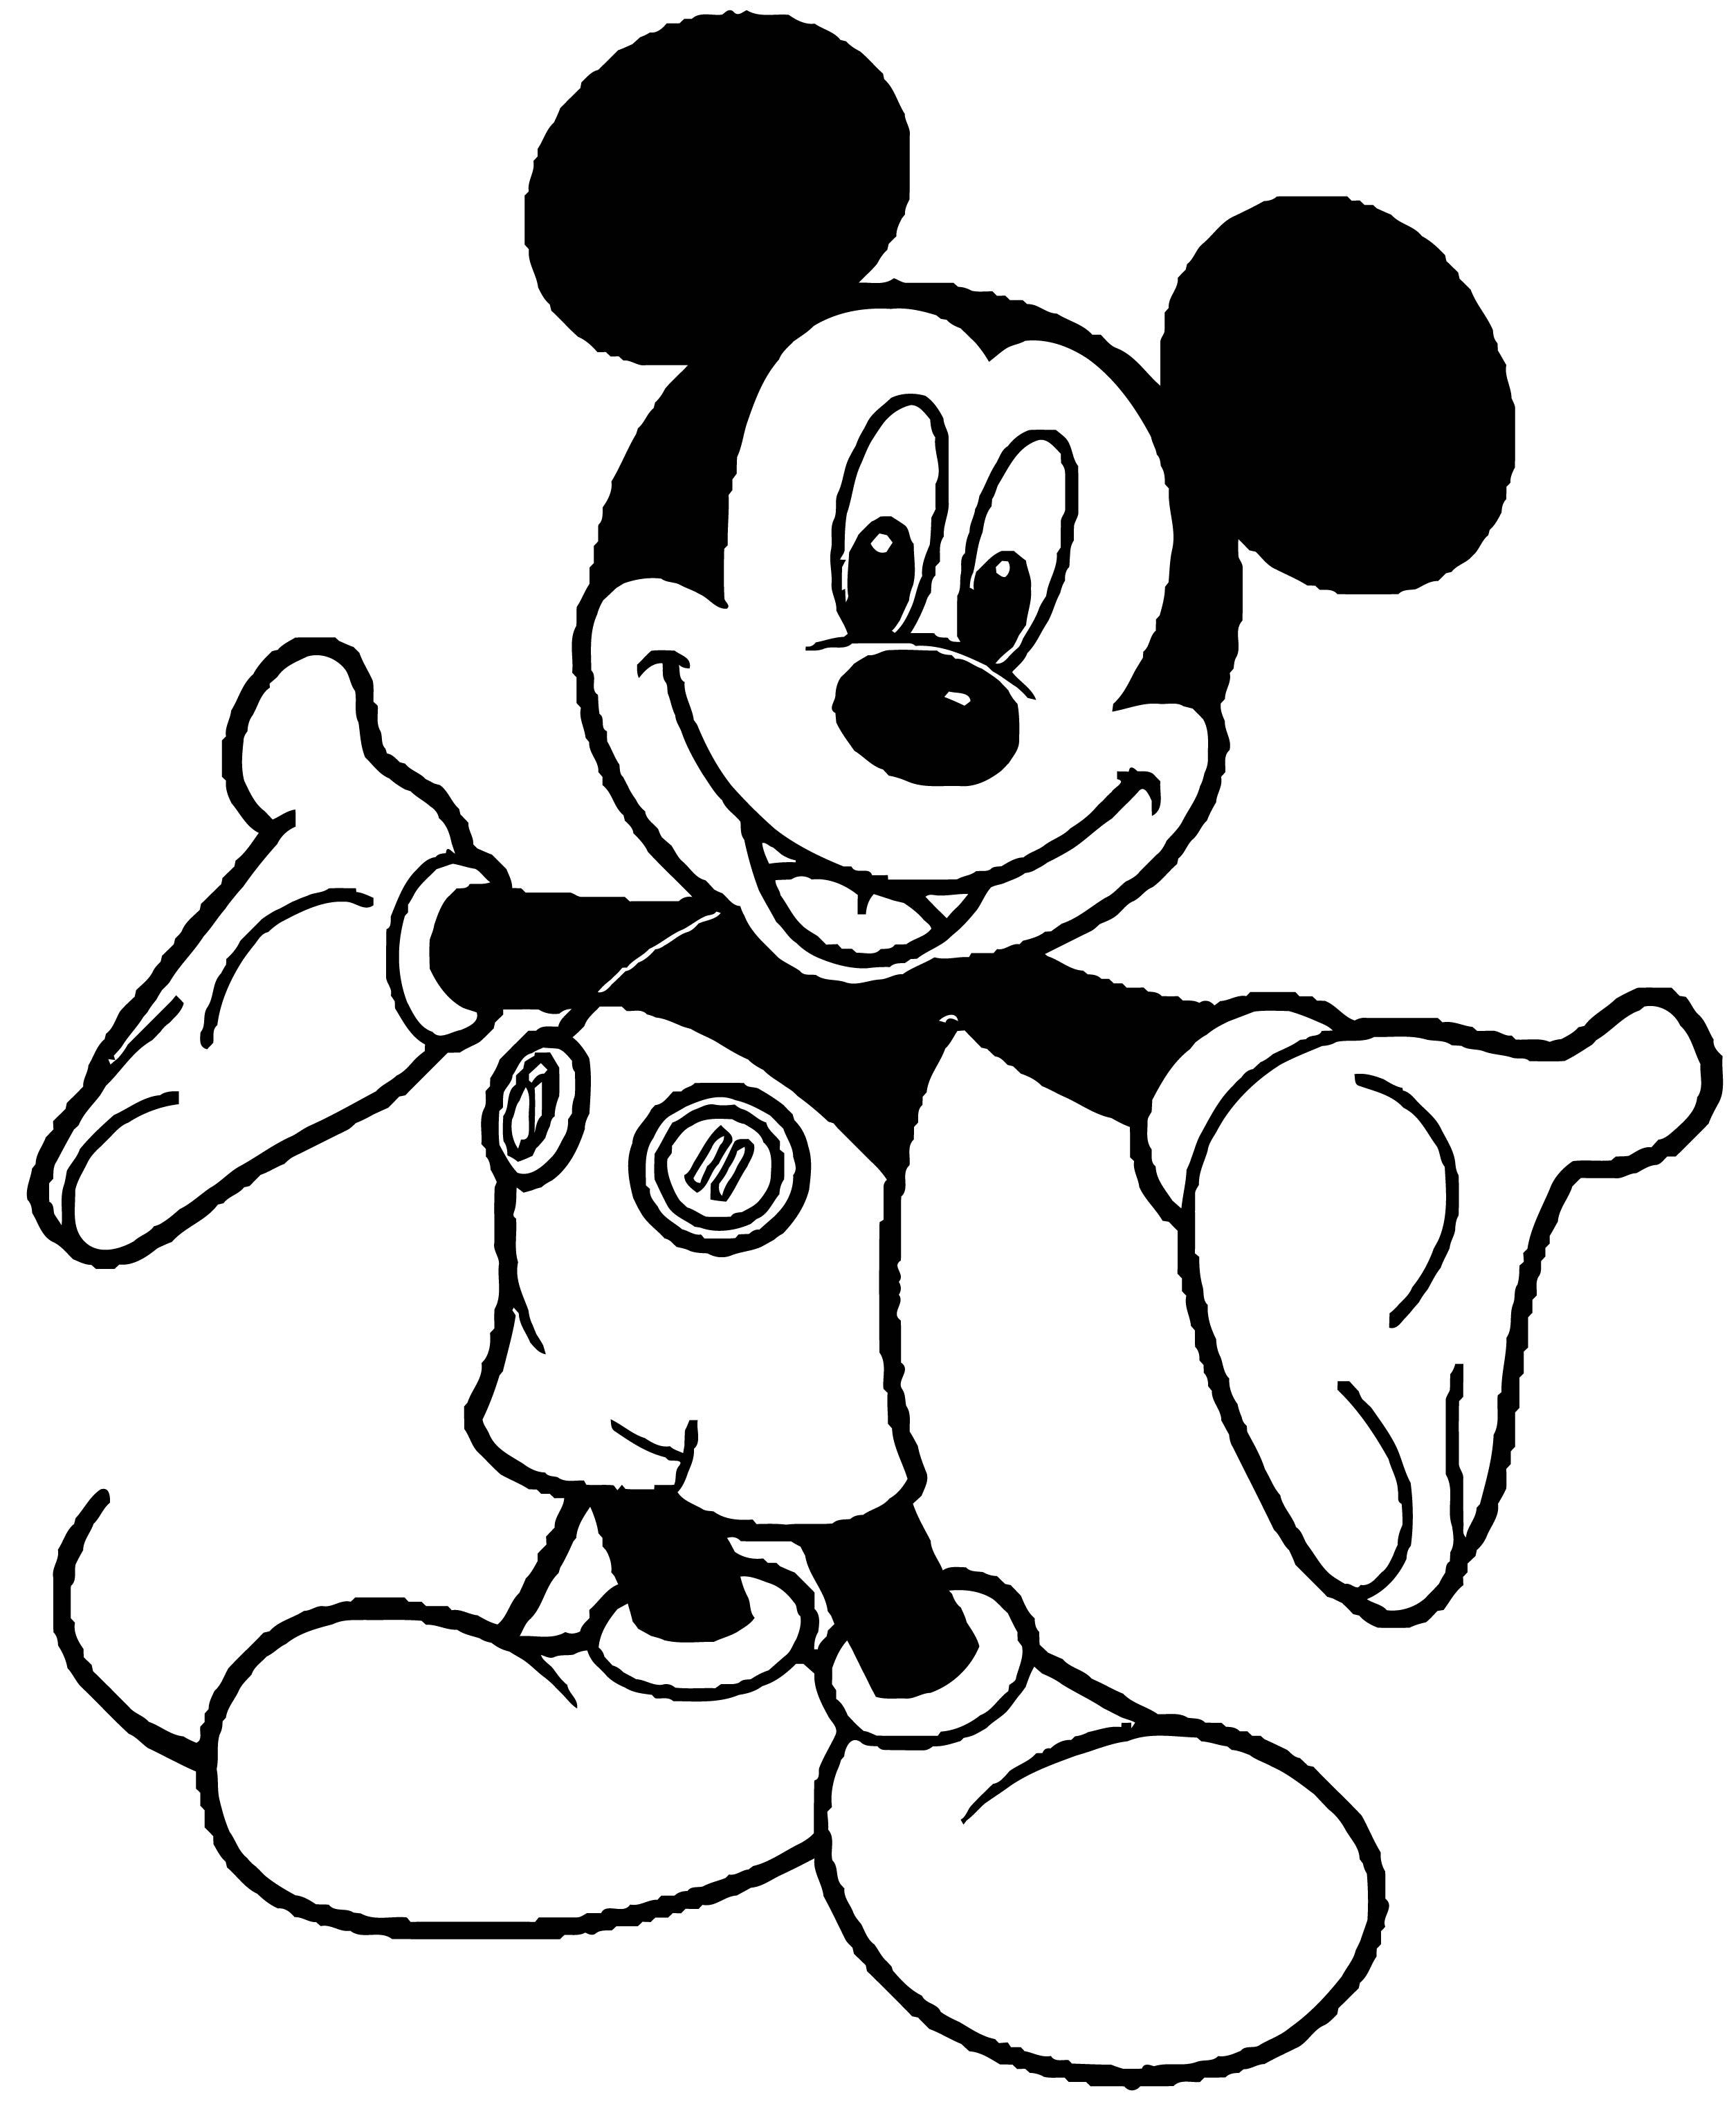 Mickey Mouse Cartoon Coloring Page Wecoloringpage 007